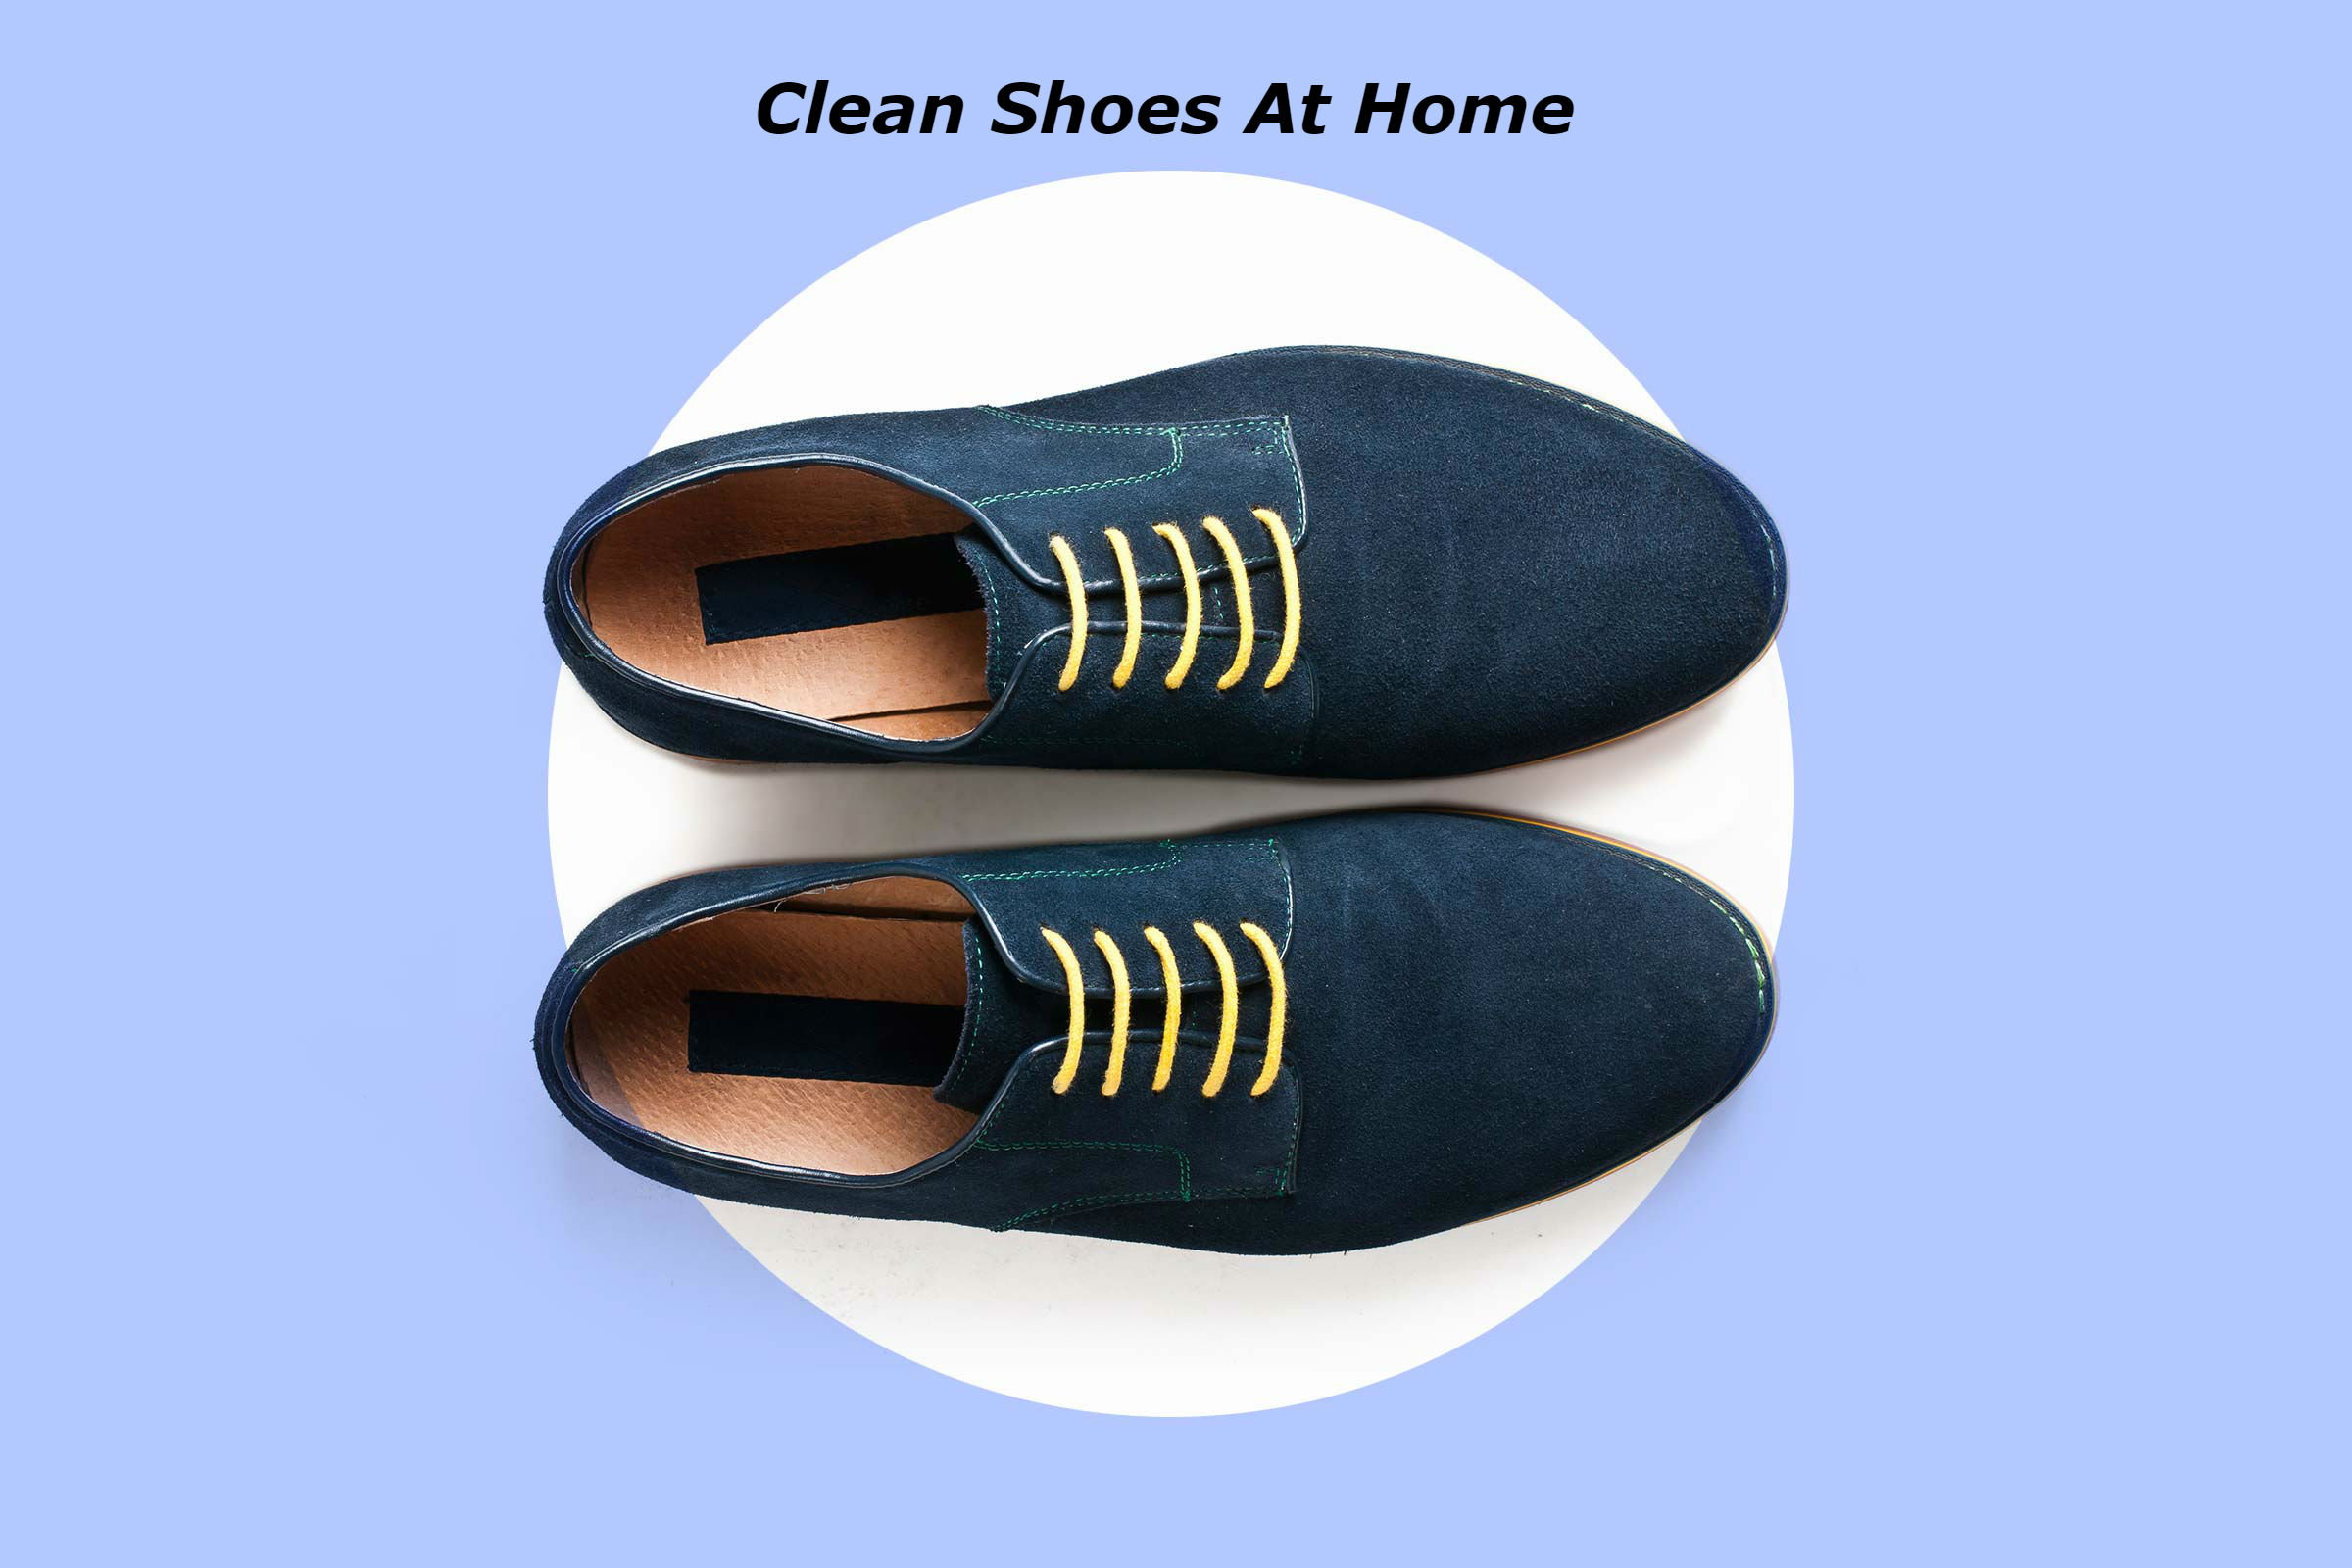 How to Make Shoe Cleaner At Home Easily